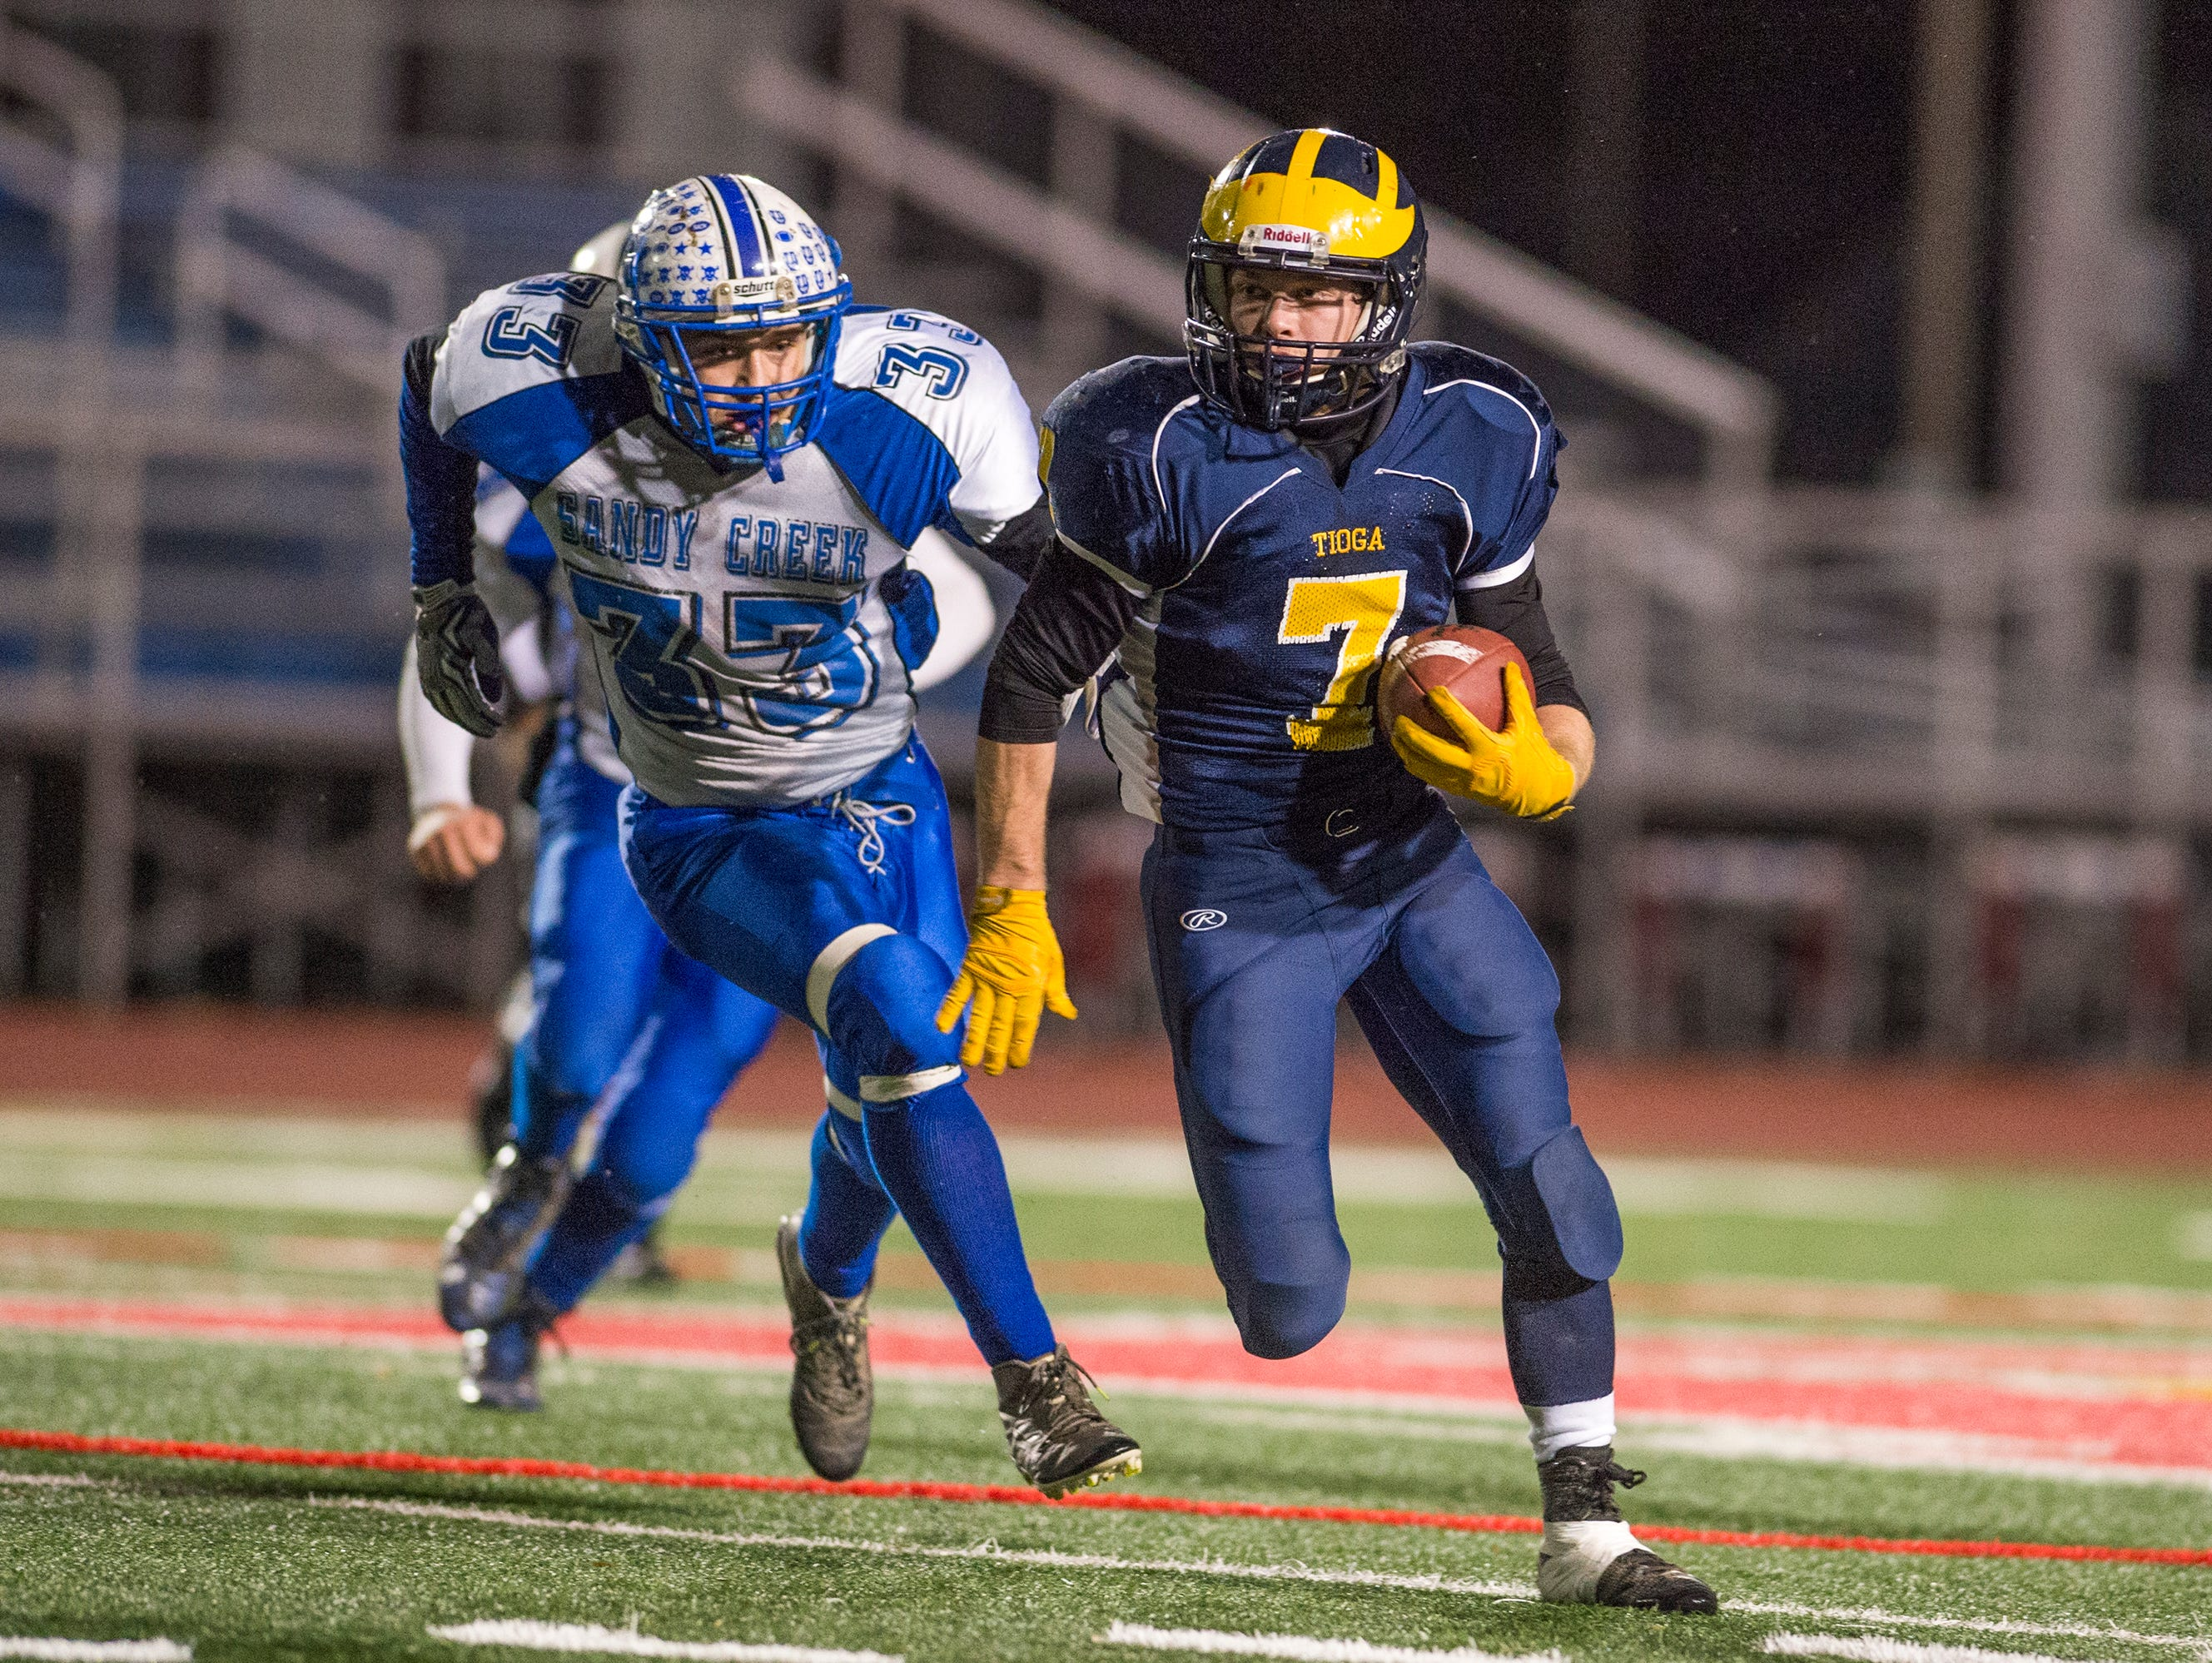 Tioga running back Jesse Manuel eludes Sandy Creek defenders during the second quarter of the Tiger's Class D state quarterfinal playoff game at Binghamton Alumni Stadium on Friday, Nov. 13, 2015.